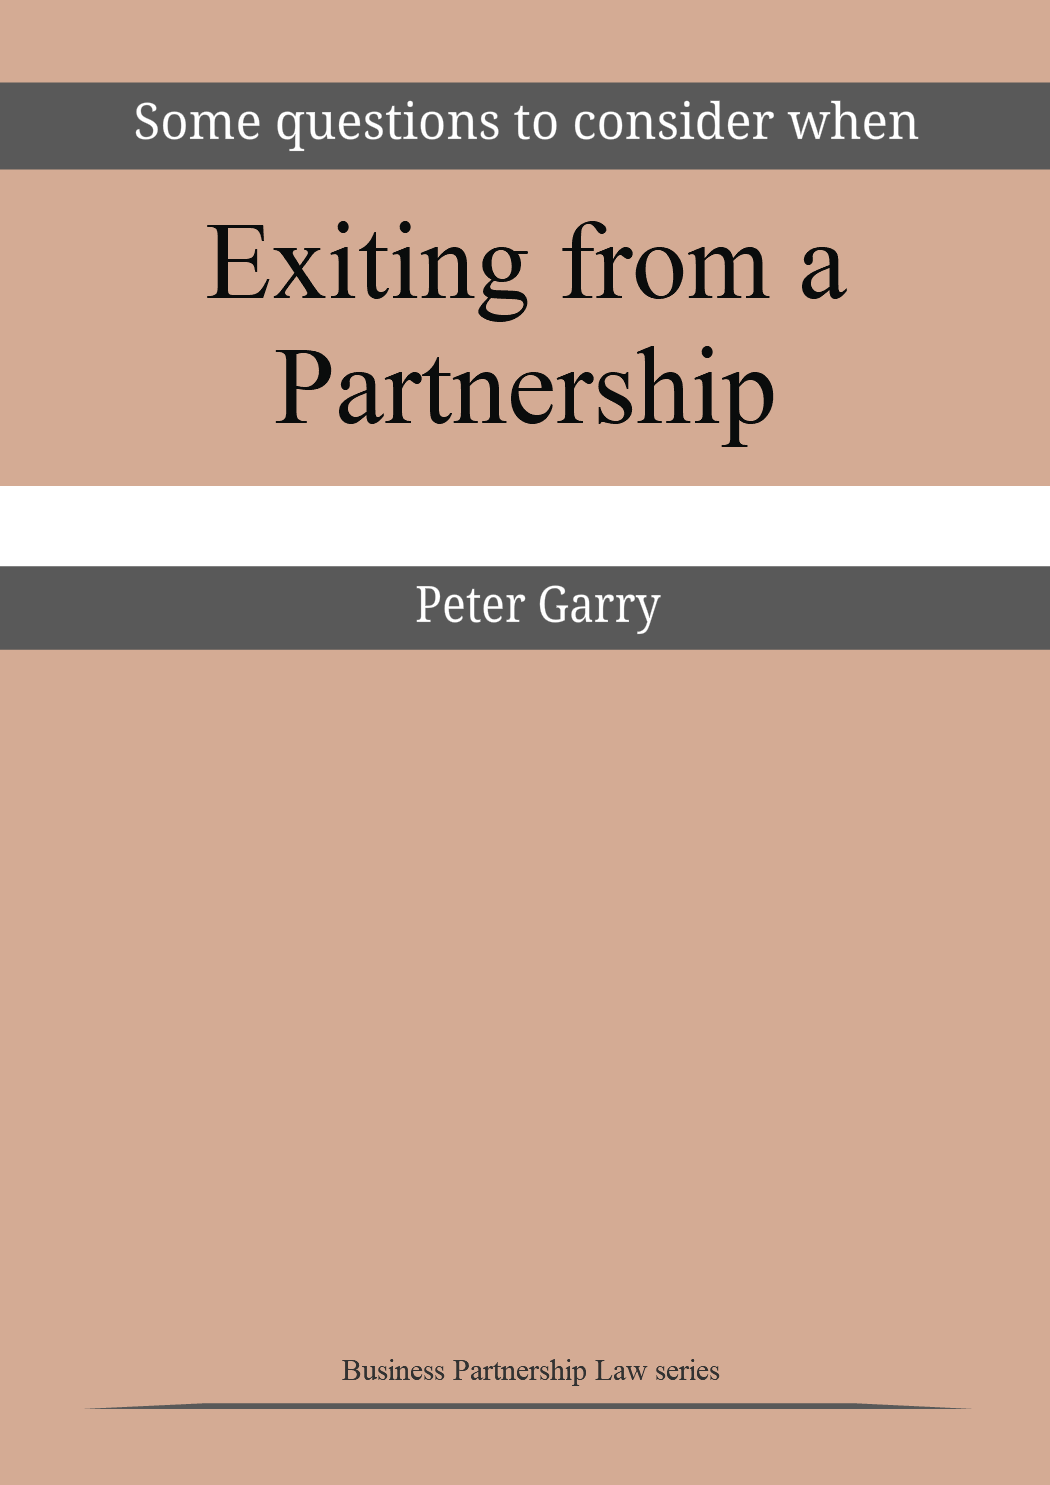 Some Questions to Consider When Exiting From a Partnership